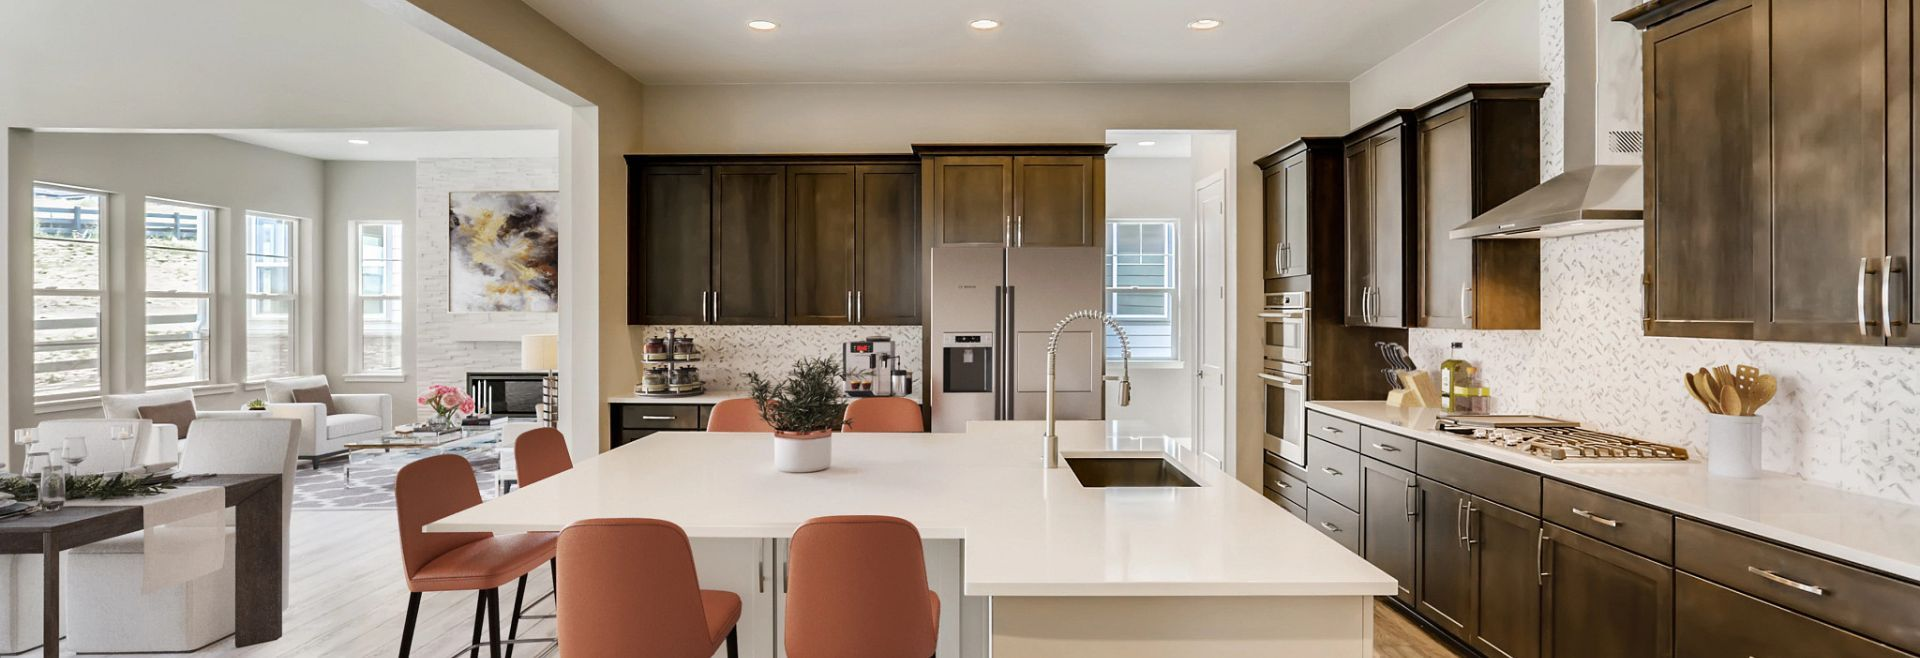 Kitchen featured in the 5086 Haven By Shea Homes in Denver, CO